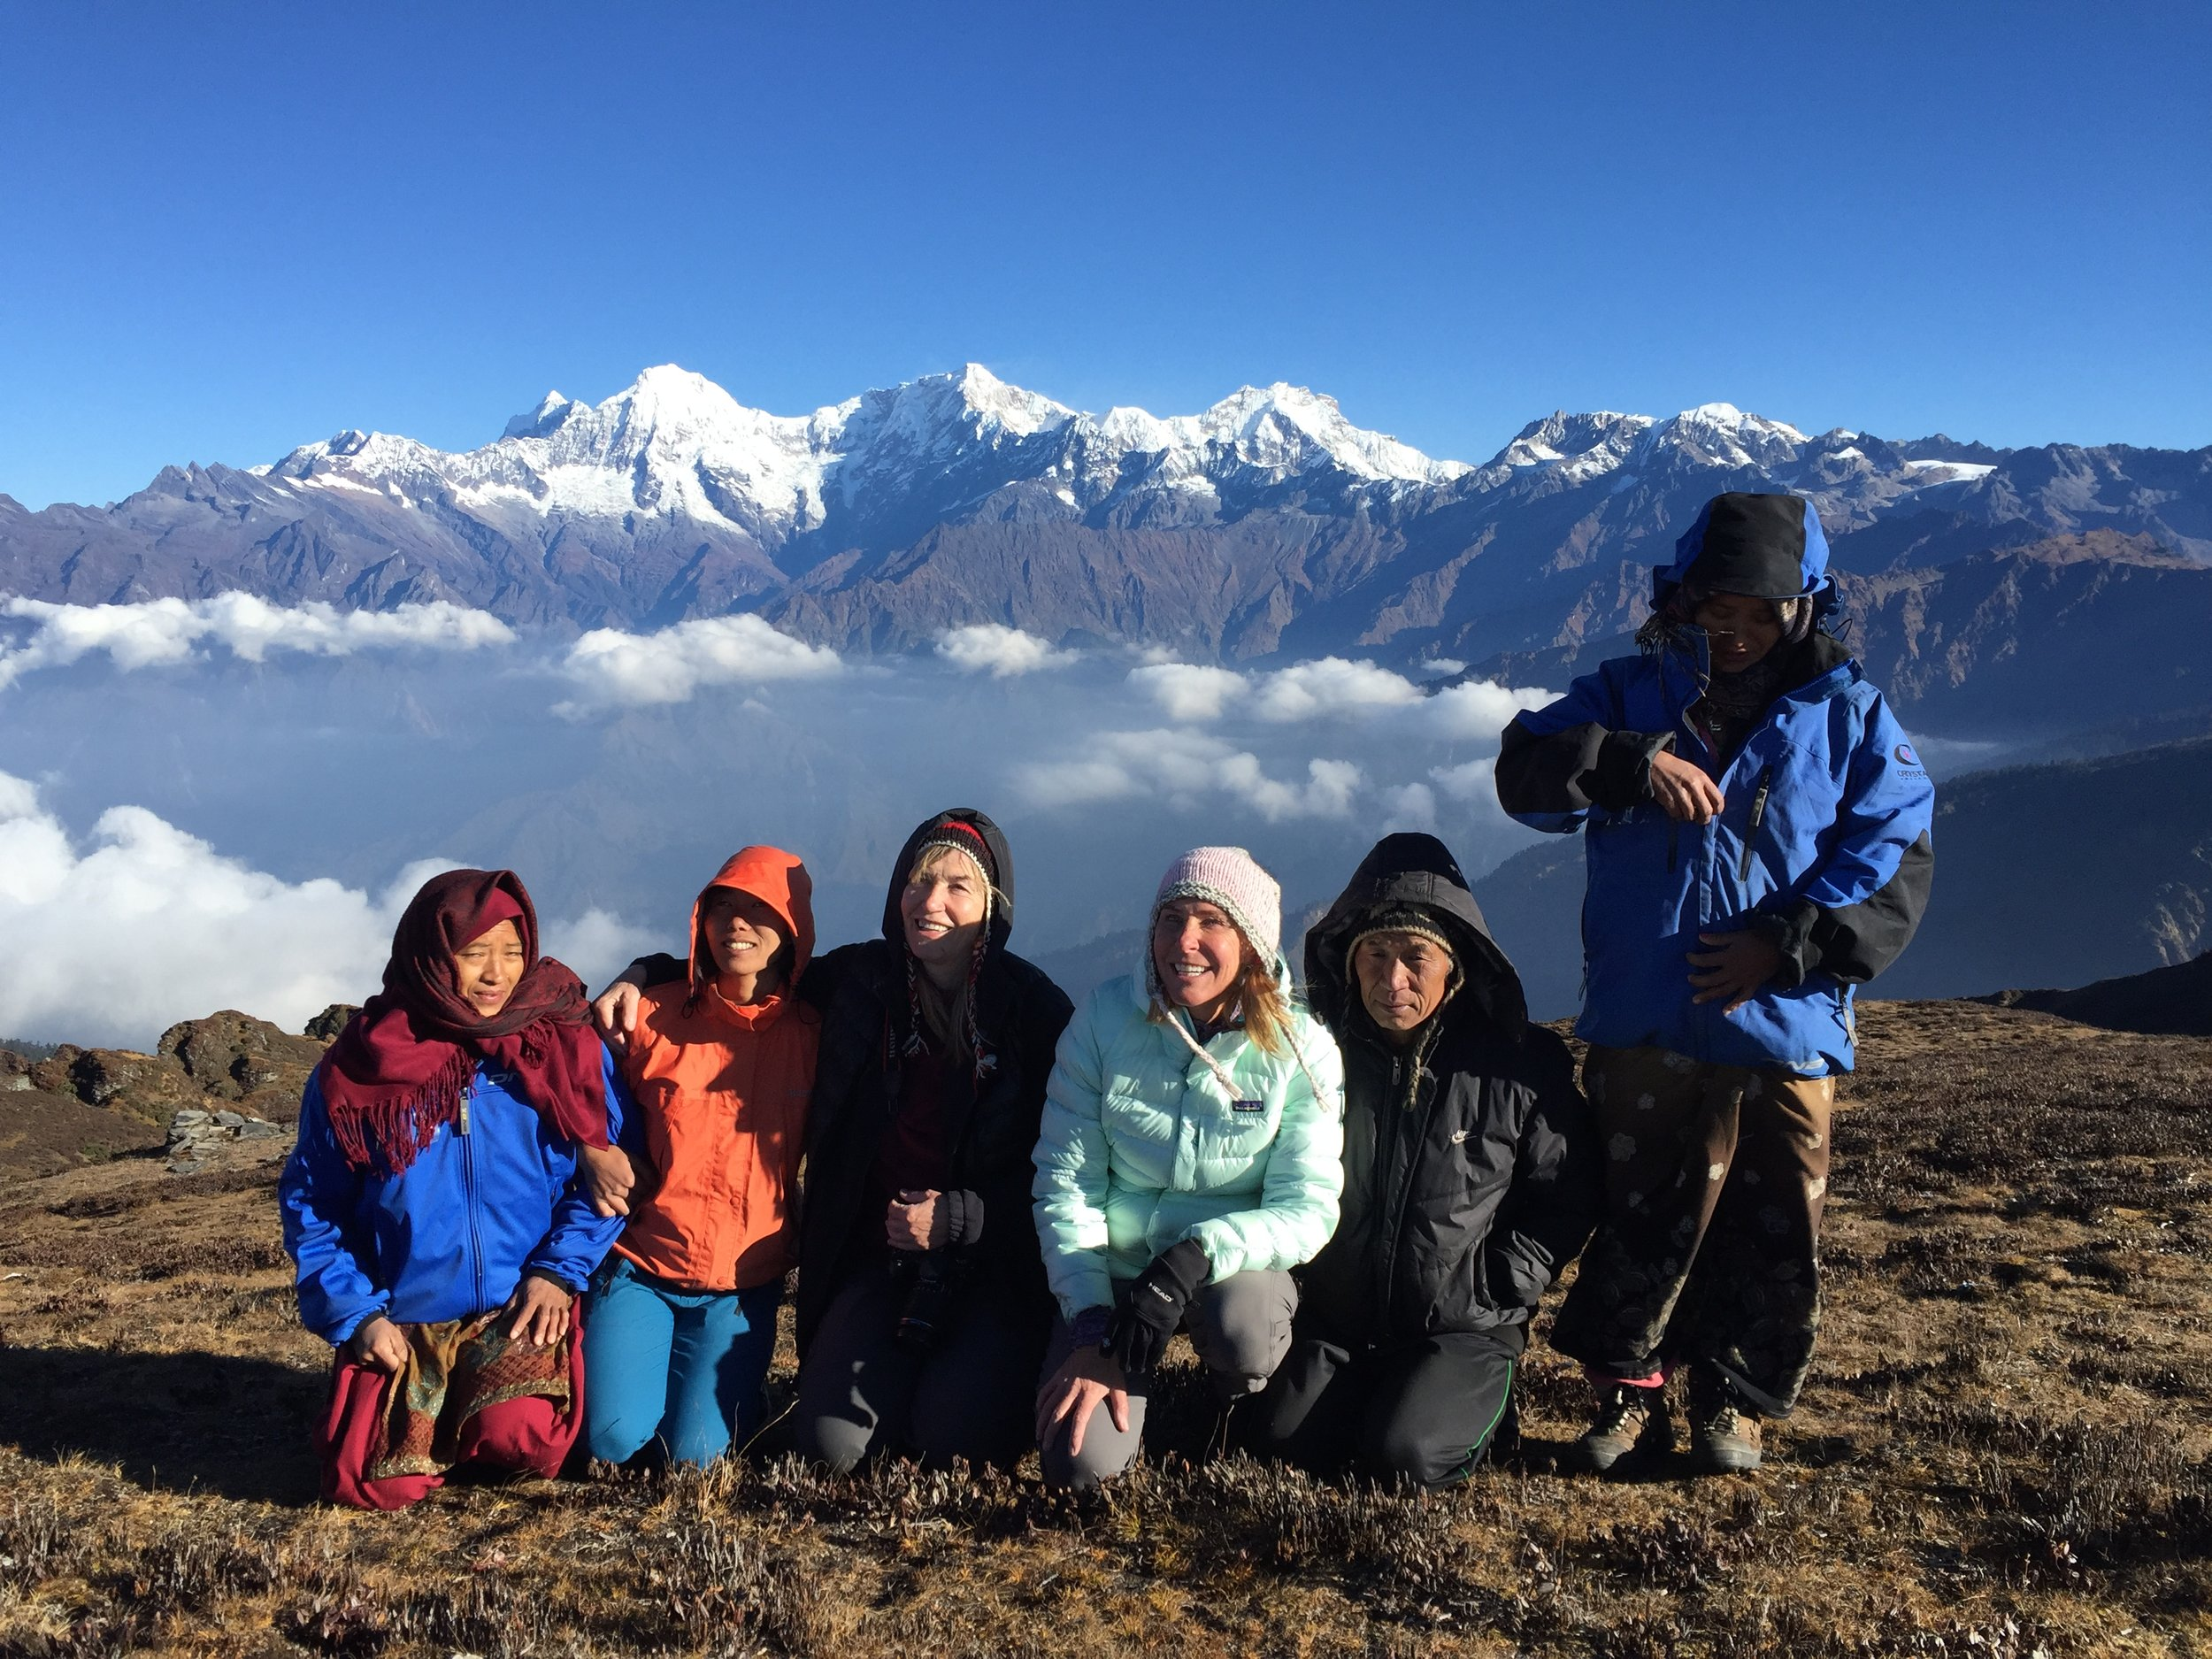 Volunteering/Trekking - Fall in love with Nepal and its peopleGet to know the people, working hand in hand with them, as you will experience day-to-day village life. Teach our sisters something awesome and sing along with the children… Help build a house and learn authentic Nepali cooking in a traditional village dwelling.After 5 days of volunteering we embark on a 9-days trek. This trek is fully supported and guided by experienced and knowledgeable guides, assistant guides and helpers. We teamed up with Mountain Culture Tours.Journey with us into the magnificent Himalayan mountains where you will be awestruck by the beauty and power. On the way back to Kathmandu we will visit ancient Hindu and Buddhist sites, letting ourselves be enchanted.19 Days Nepal TripOur trip starts in Kathmandu on October 20, 2019 and ends on November 7, 2019.KATHMANDU VALLEY:The Kathmandu Valley historically known as Nepal Valley lies at the crossroads of ancient civilizations of Asia and has at least 130 important monuments, including several pilgrimage sites for Hindus and Buddhists. There are seven World Heritage Sites within the valley.Historically, the valley and adjoining areas made up a confederation known as the Nepal Mandala. Until the 15th century, Bhaktapur was its capital, when two other capitals, Kathmandu and Lalitpur (Patan), were established. After the annexation of the valley by the Gorkha Kingdom, and subsequent conversion of the Valley as the capital of their empire, the designation of